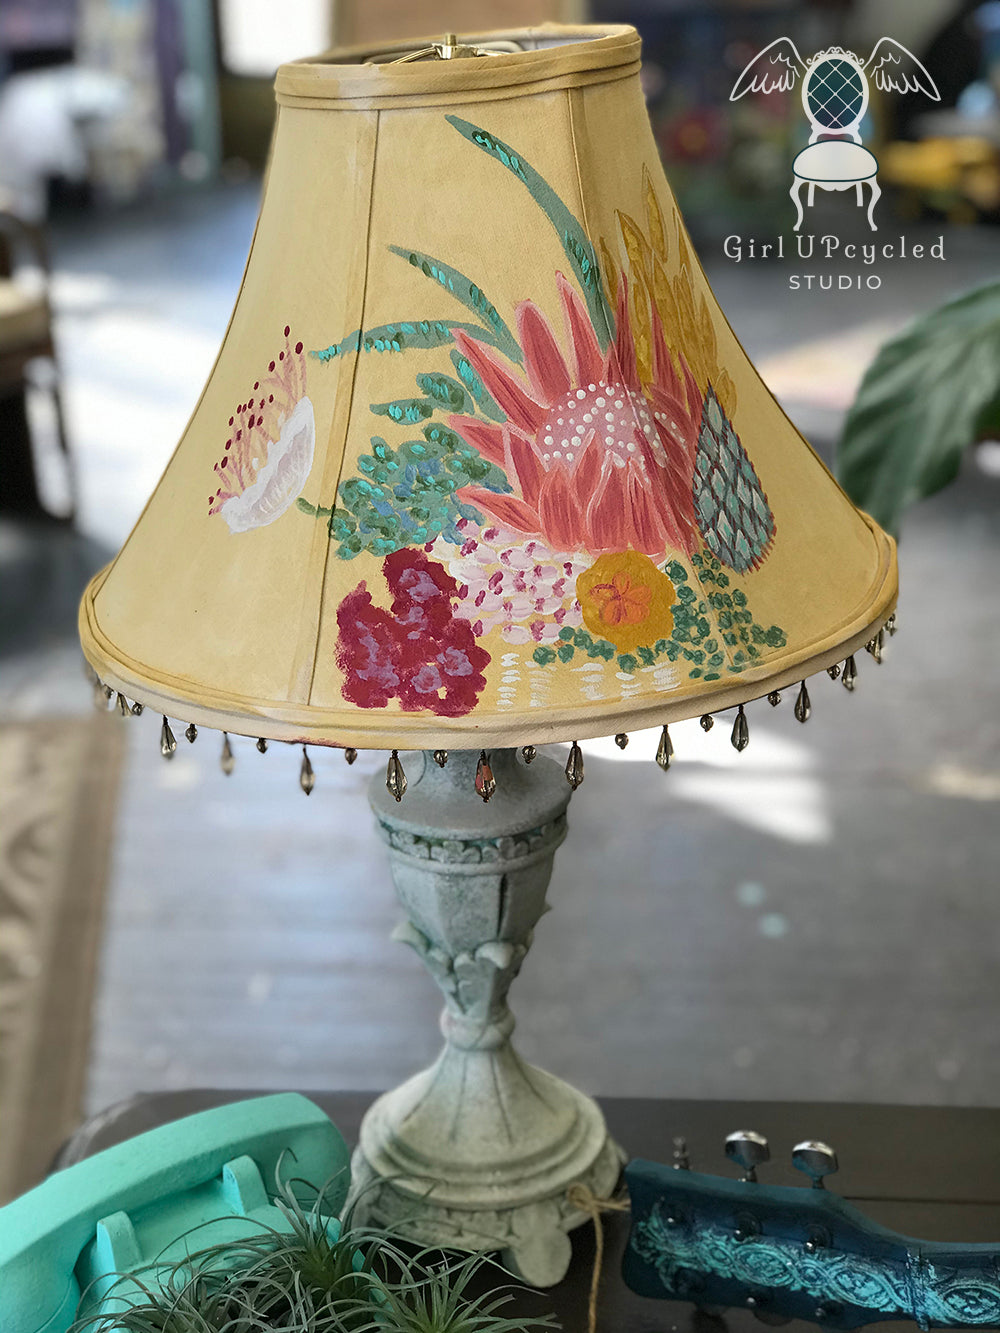 Create a Custom DIY Lampshade Using Paint to Get the Look of Anthropologie